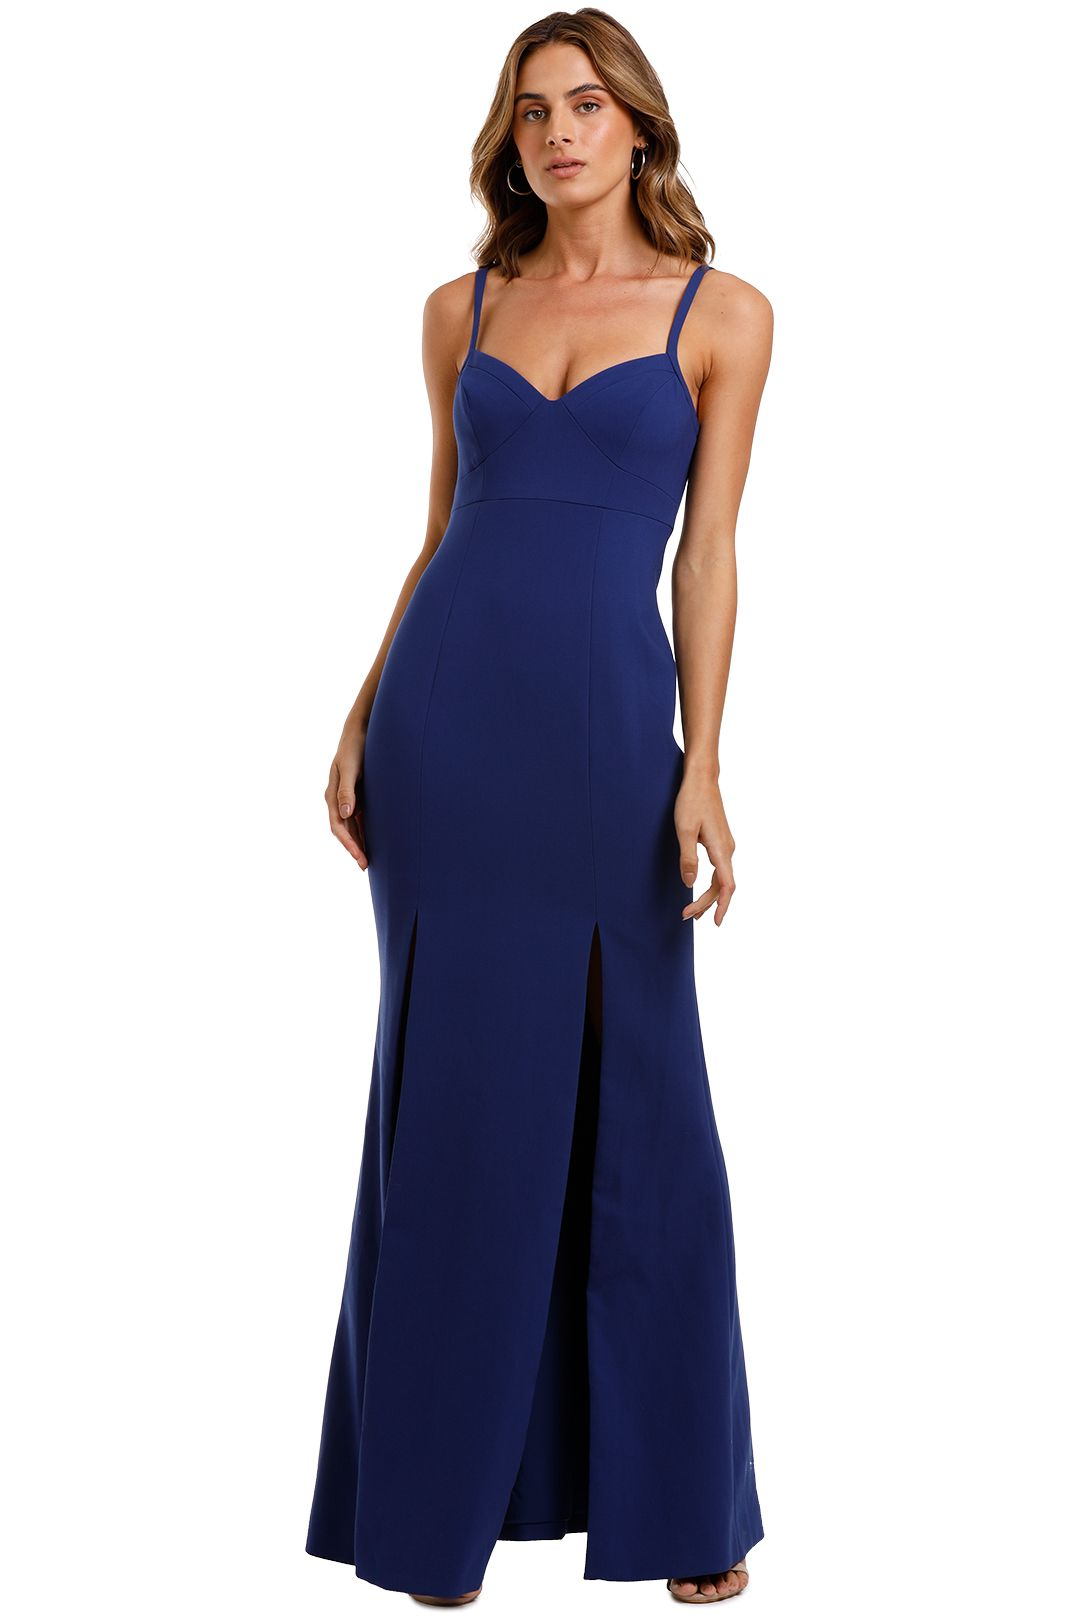 Likely NYC Alameda Gown Blueprint